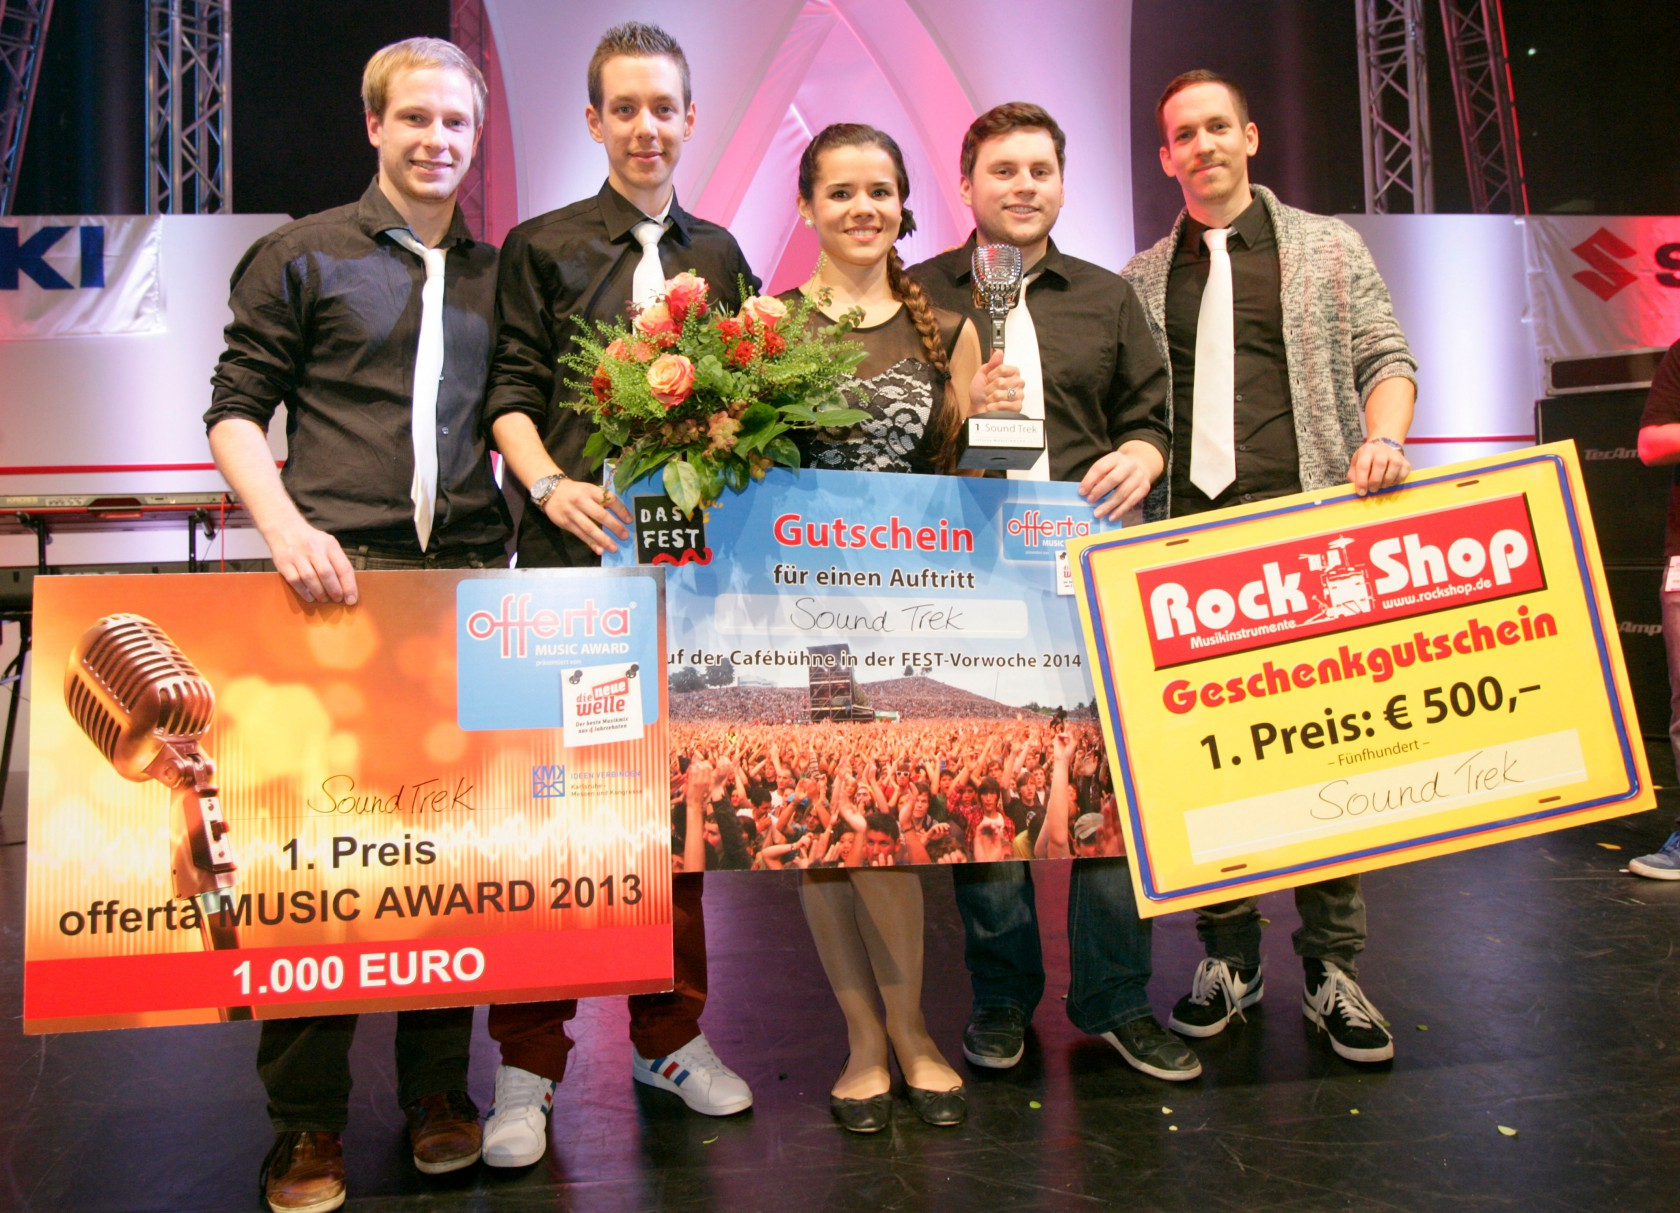 Sound Trek - Gewinner des Offerta Music Award